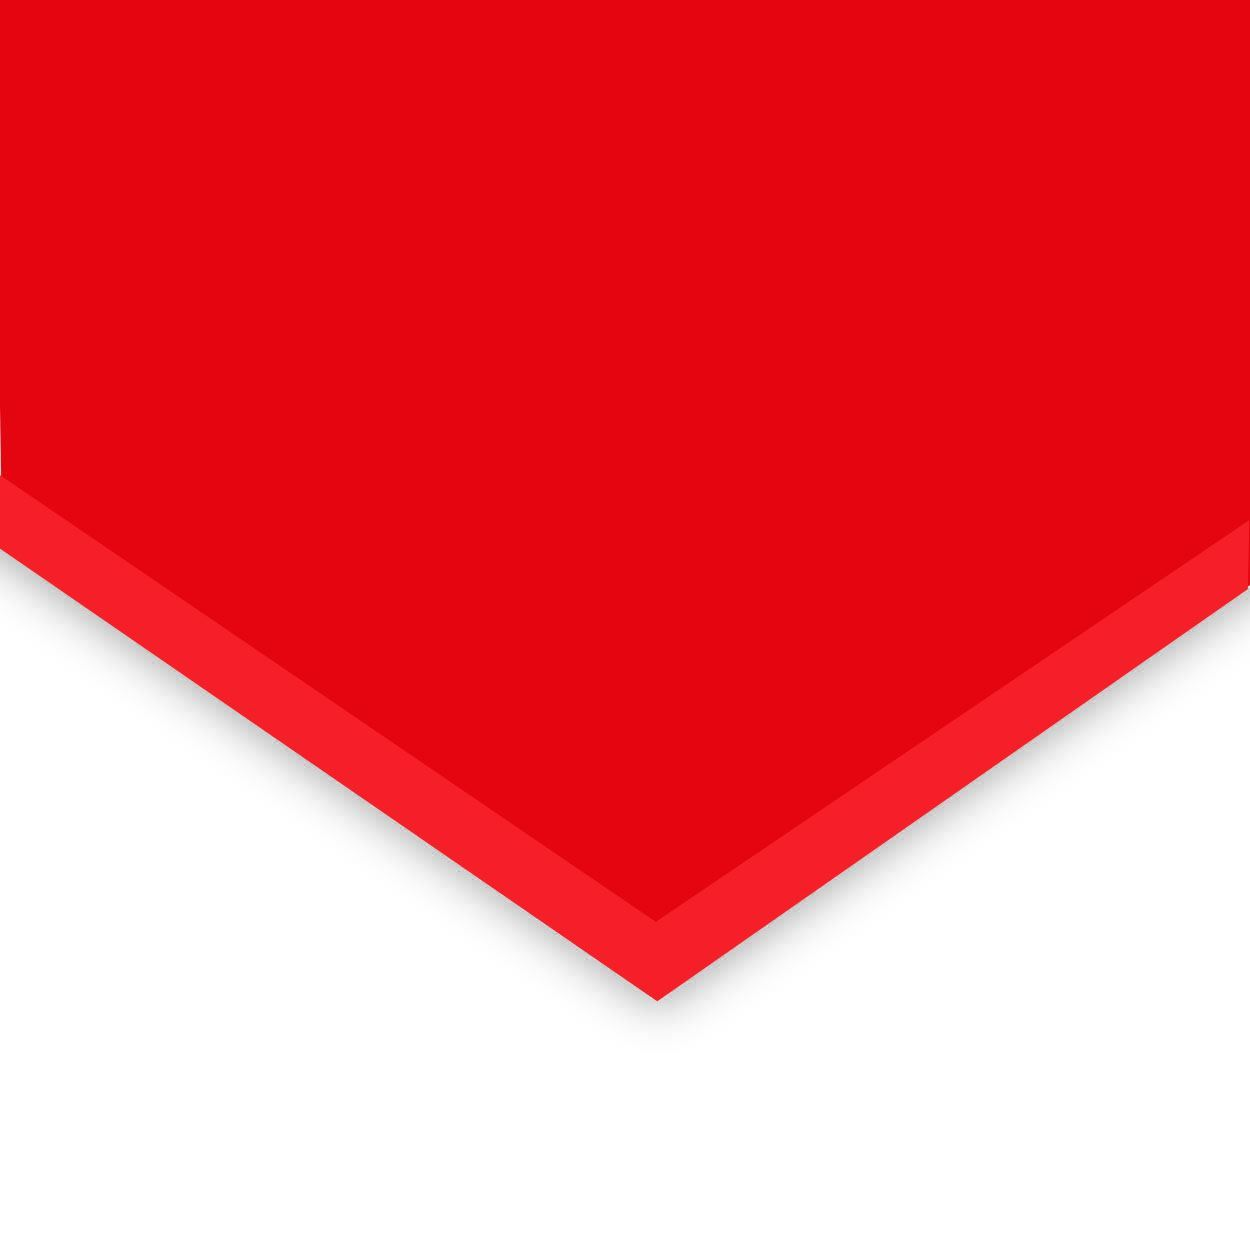 RED EXP PVC 3mm 4x8FT - Red Expanded PVC Sheets